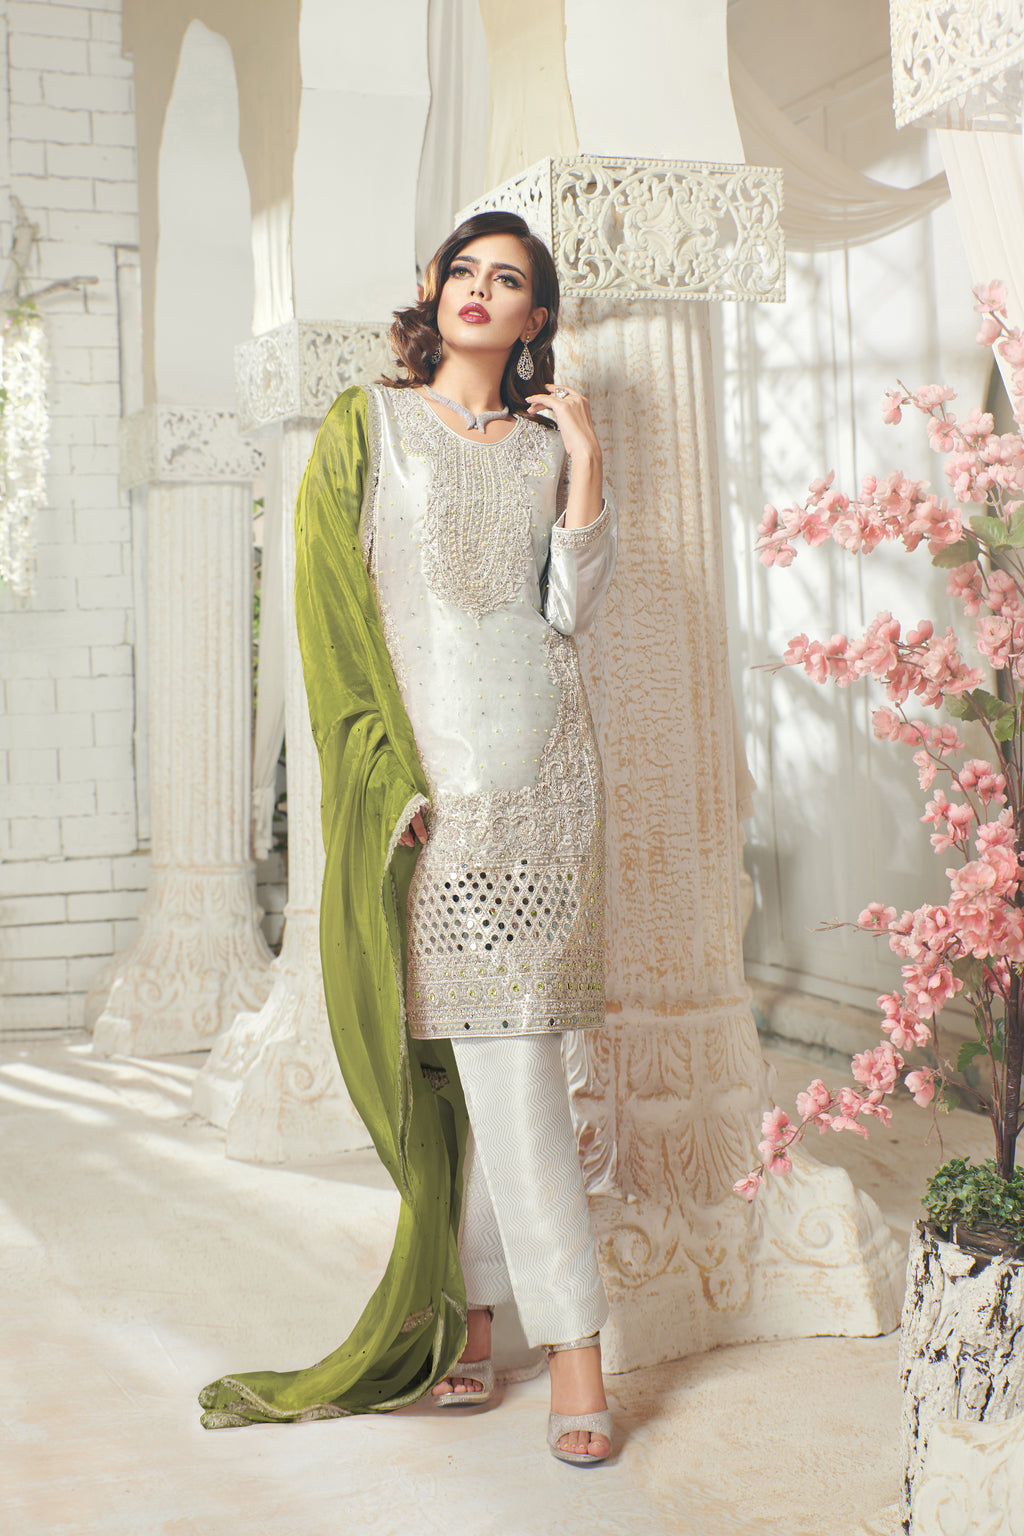 Formal Dresses for Weddings, fancy dresses for weddings, designer bridal dresses,